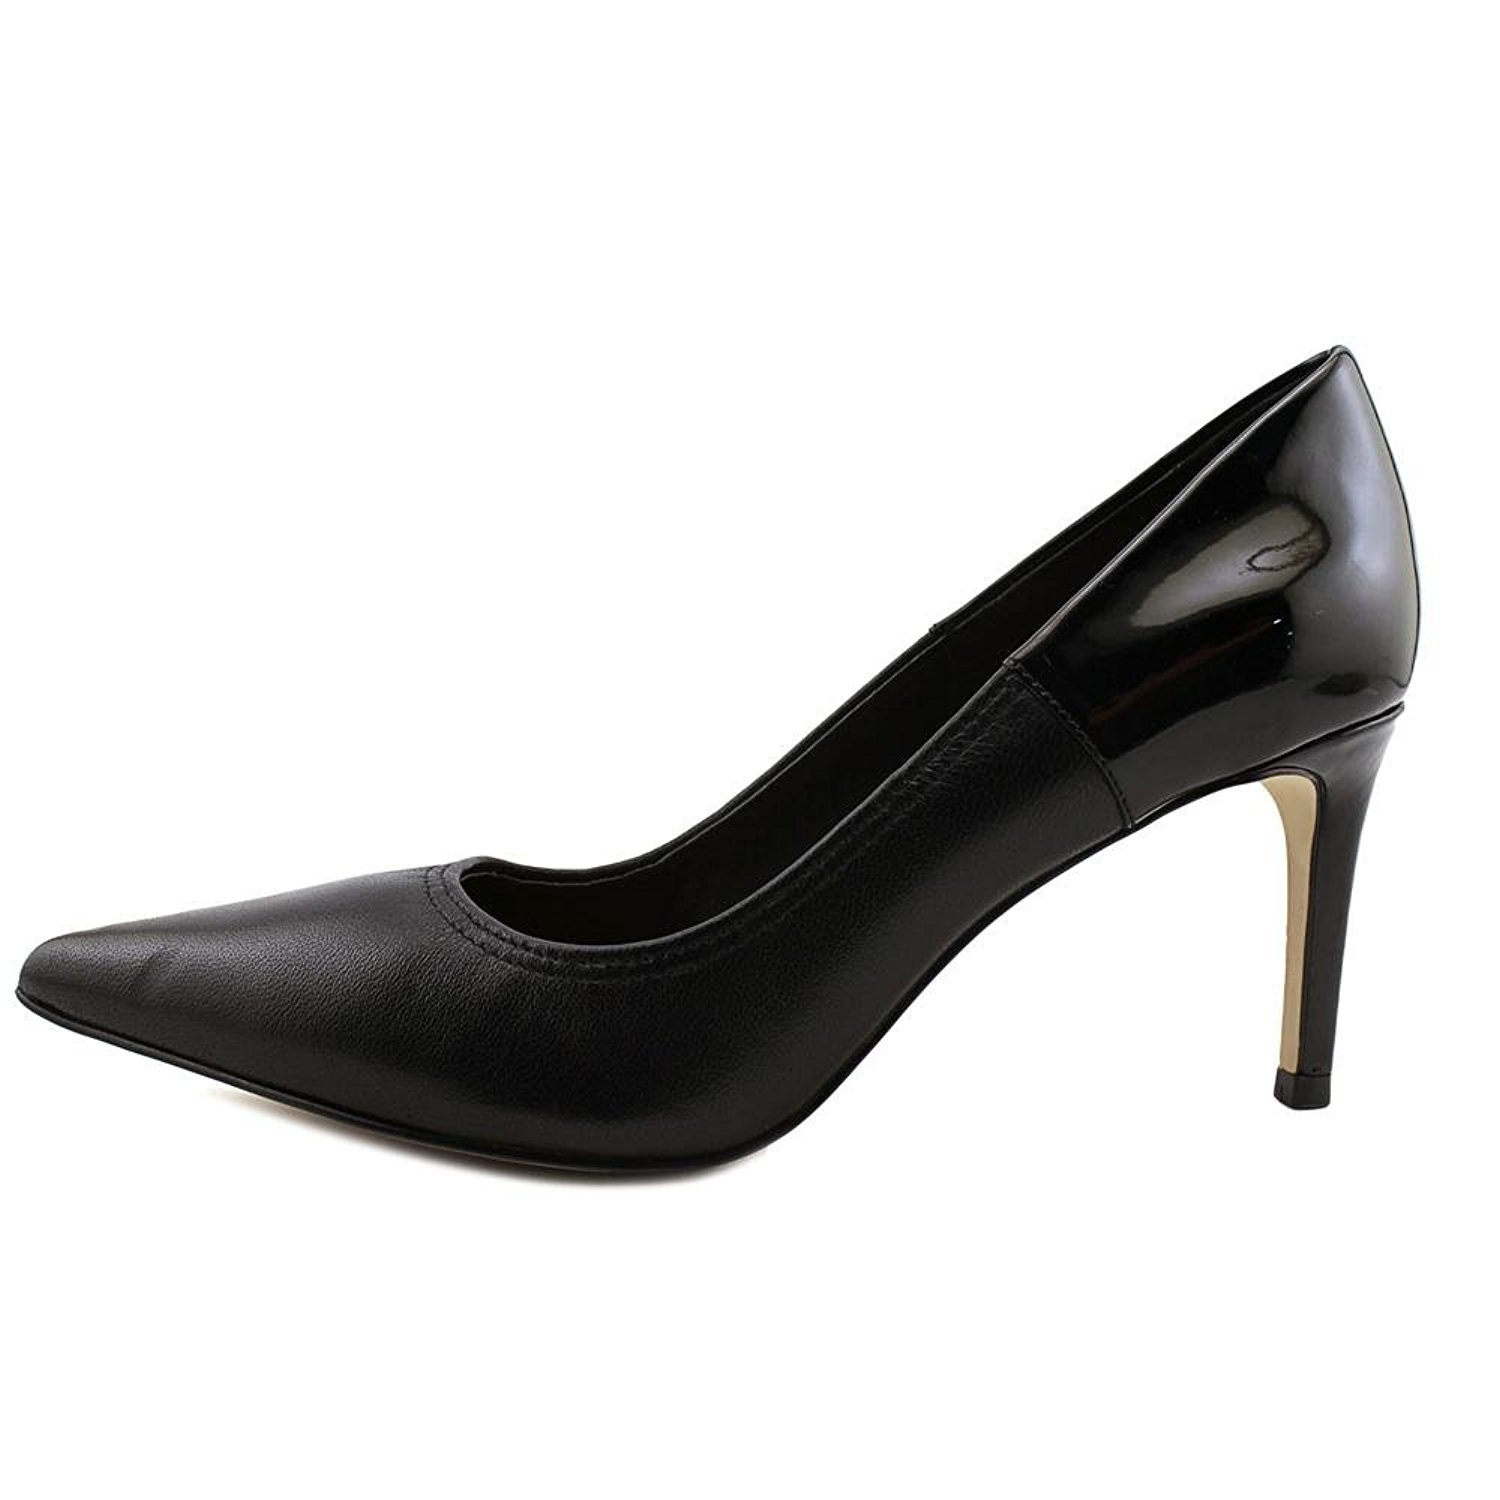 Tahari Womens Peyton Pointed Toe Classic Pumps Black Size 75